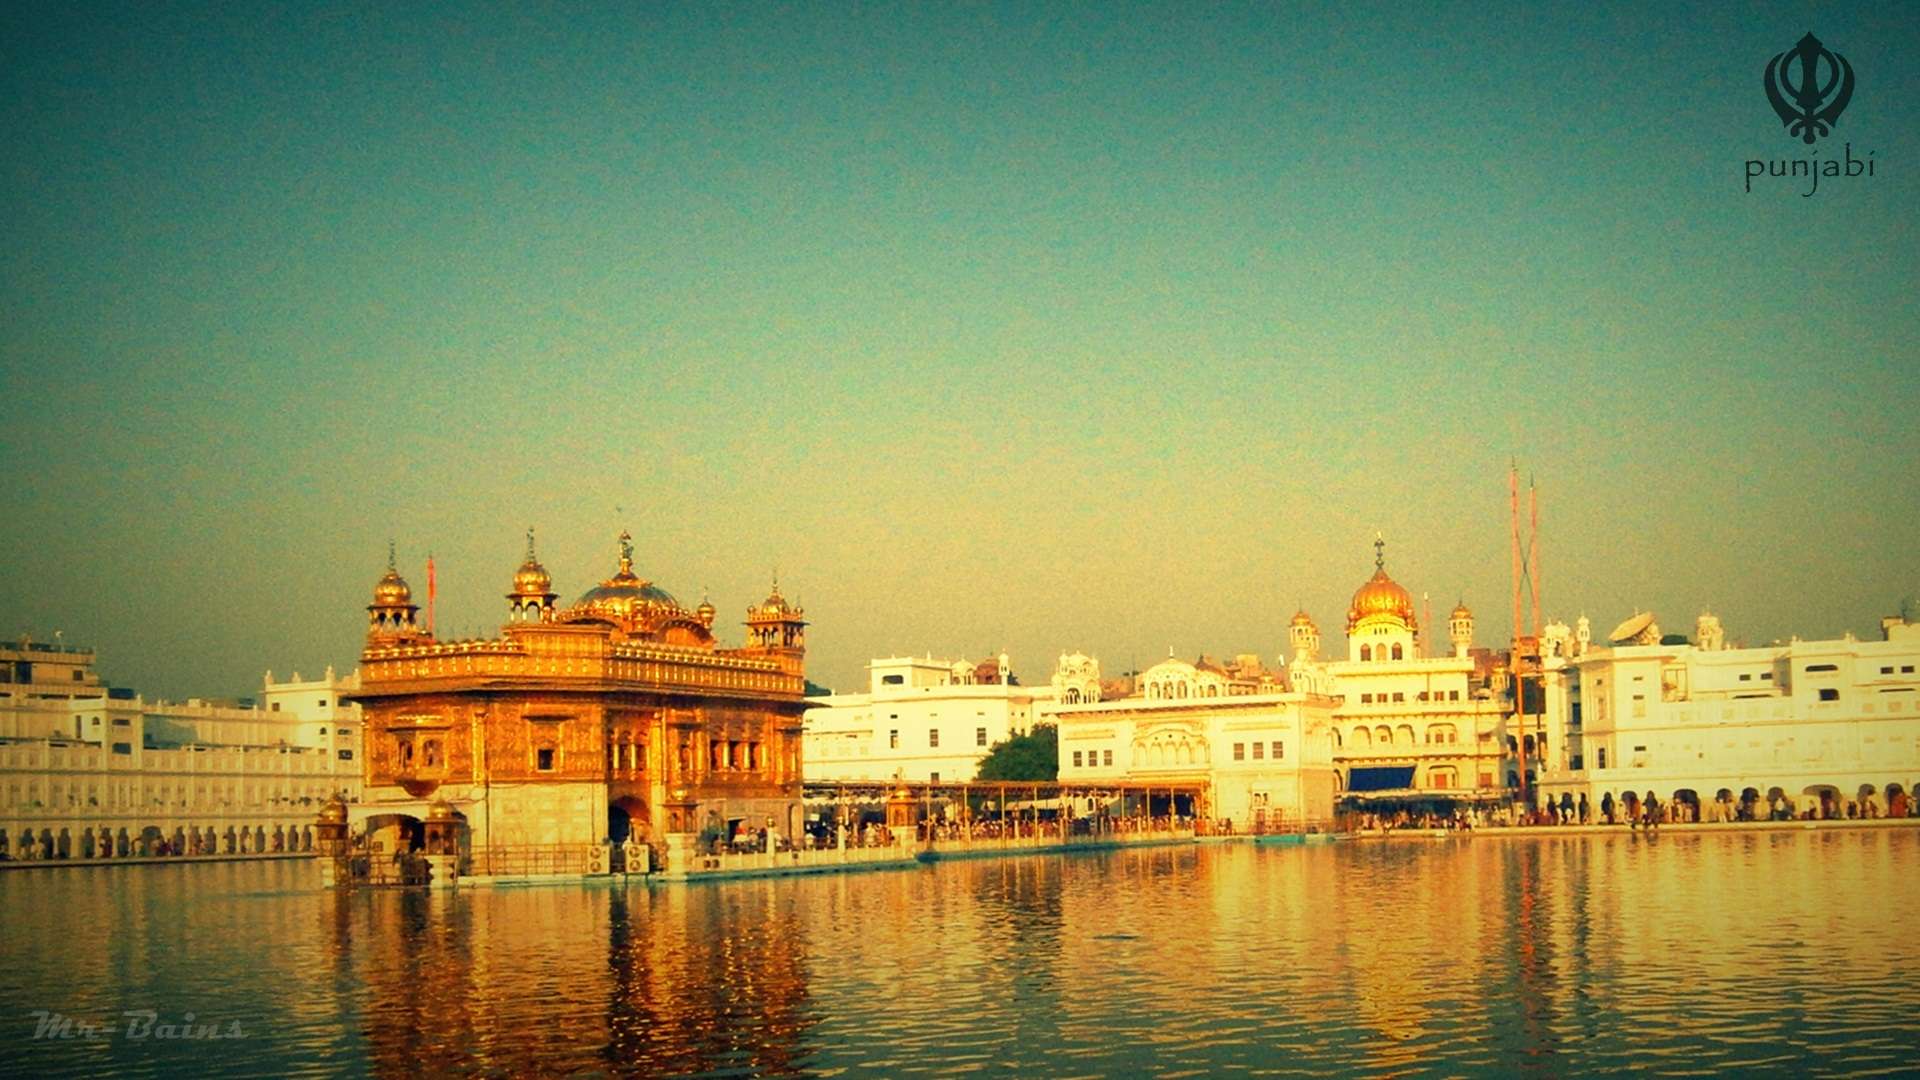 47 harmandir sahib wallpapers on wallpapersafari - Golden temple images hd download ...